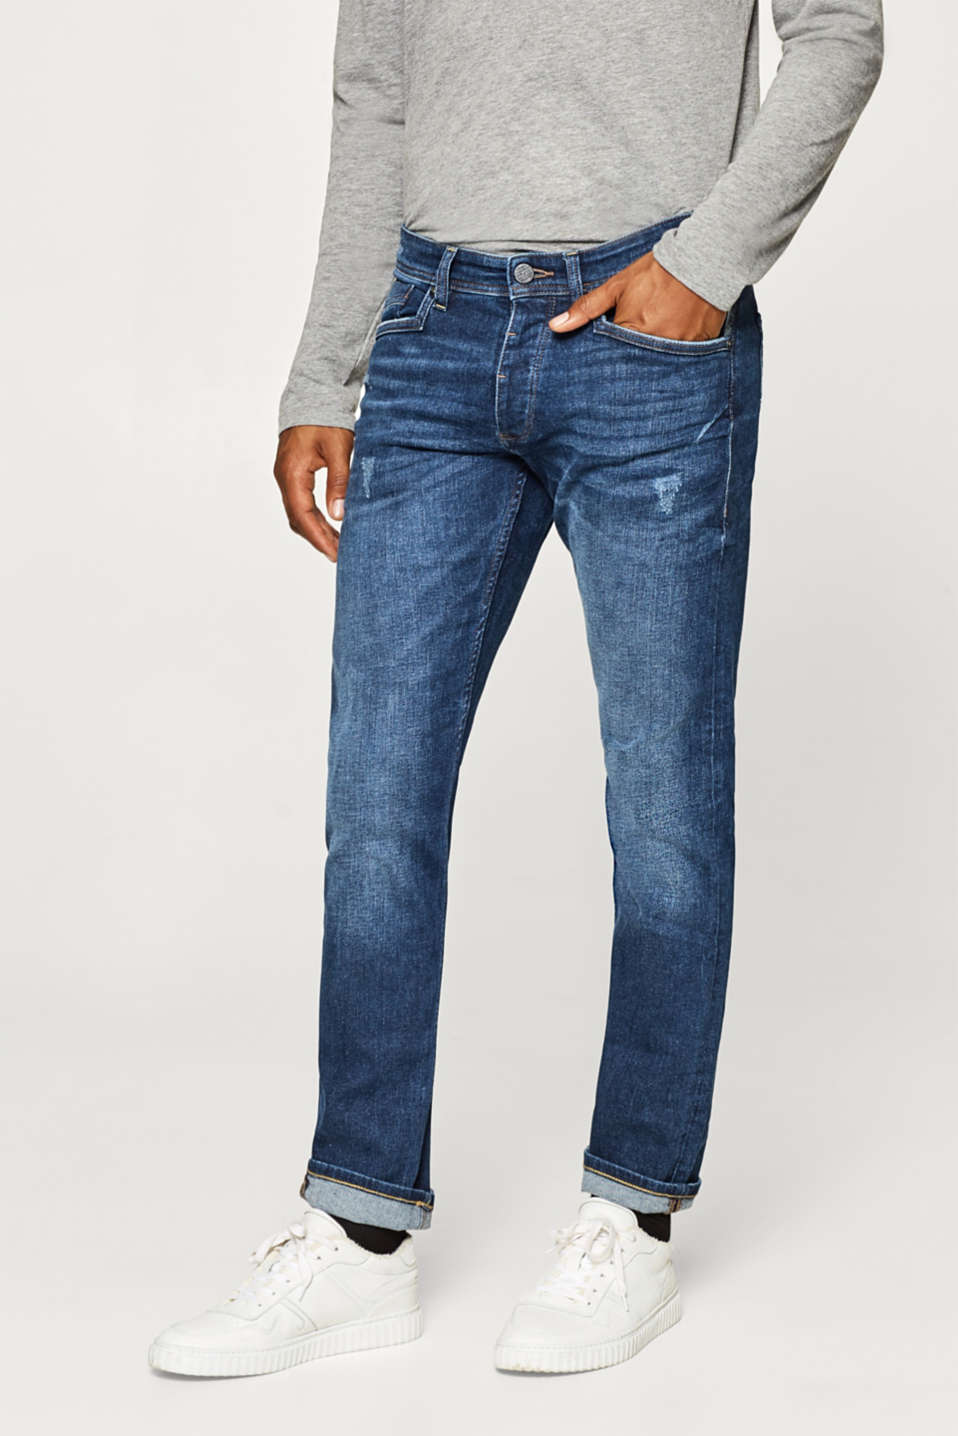 edc - Stretch jeans with a washed effects